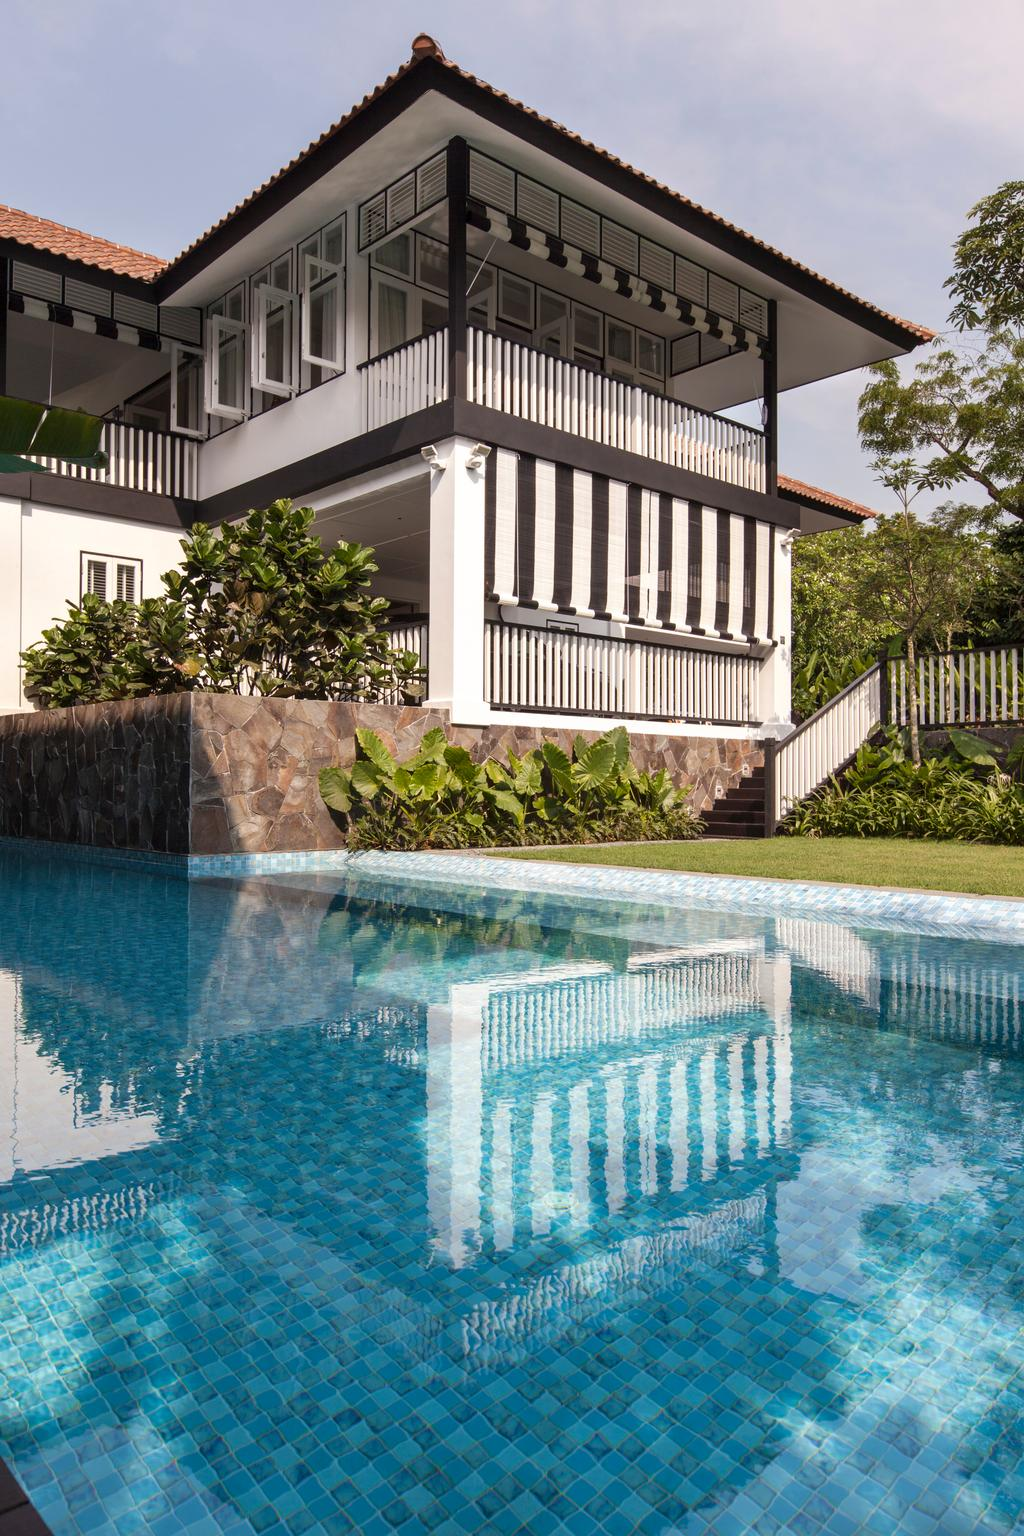 Traditional, Landed, Maryland Drive, Architect, Aamer Architects, Pool, Water, Building, Hotel, Resort, Swimming Pool, Backyard, Outdoors, Yard, Bonsai, Flora, Jar, Plant, Potted Plant, Pottery, Tree, Vase